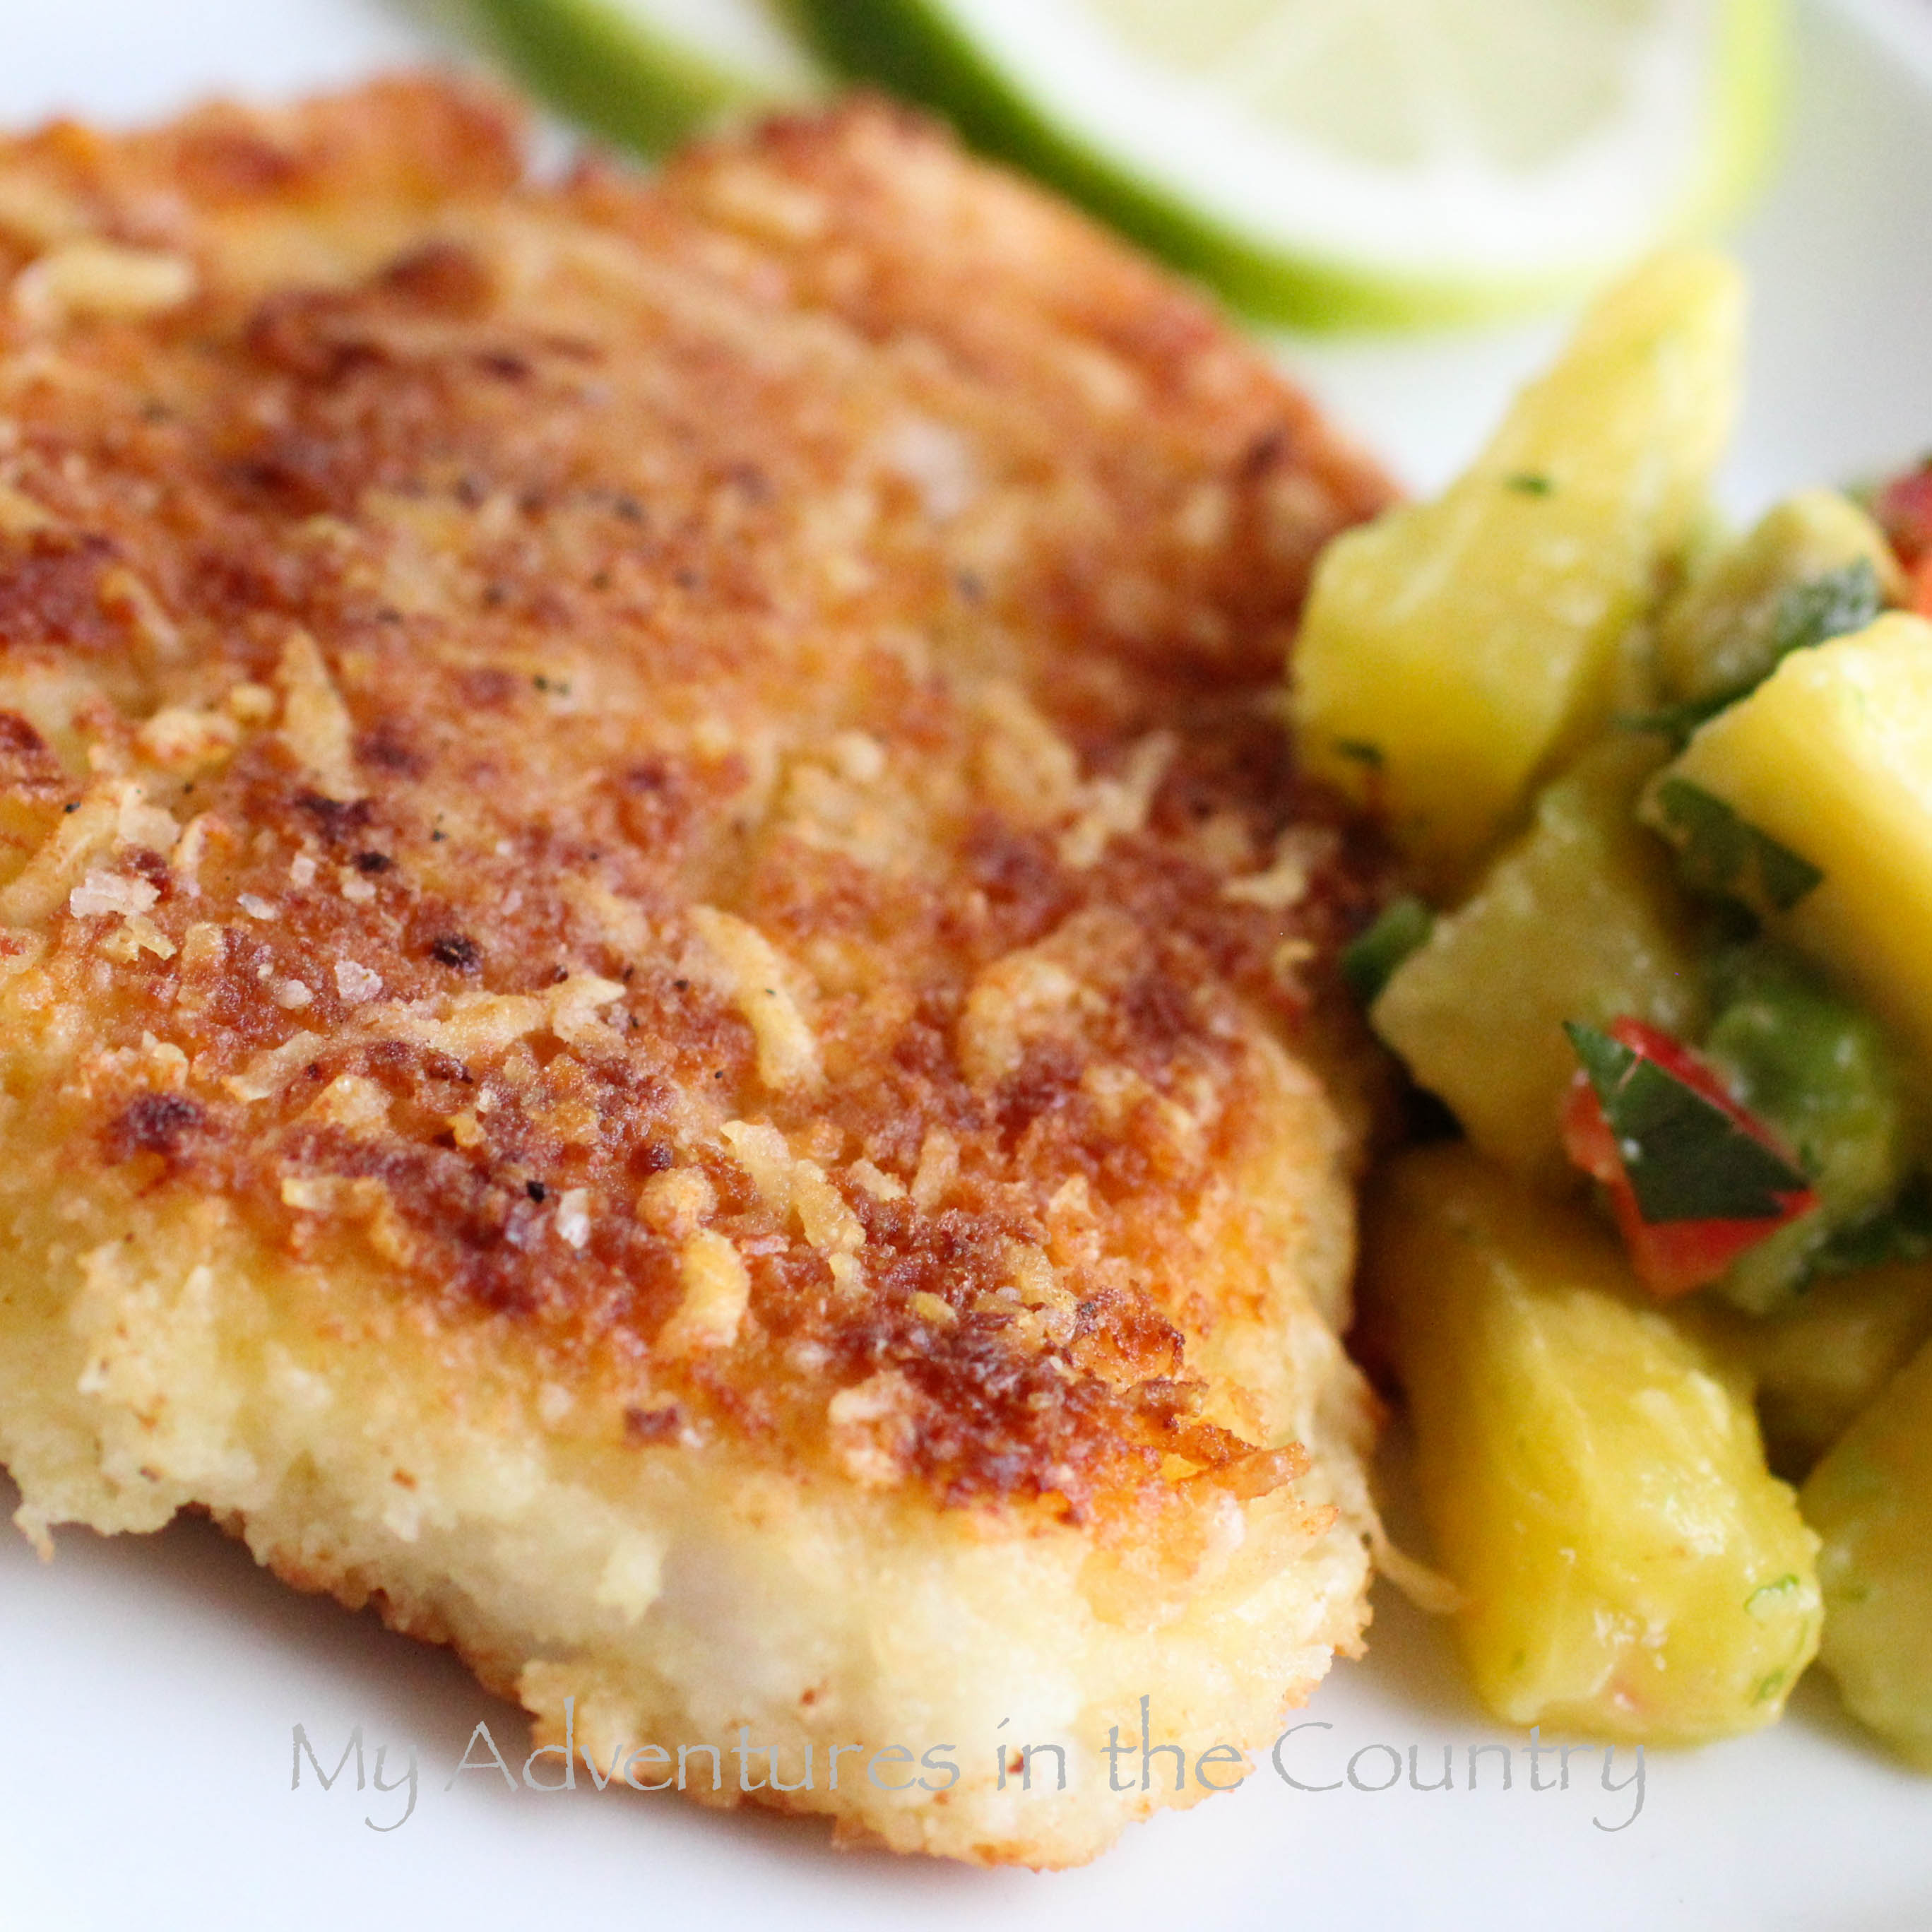 baked swai with panko bread crumbs